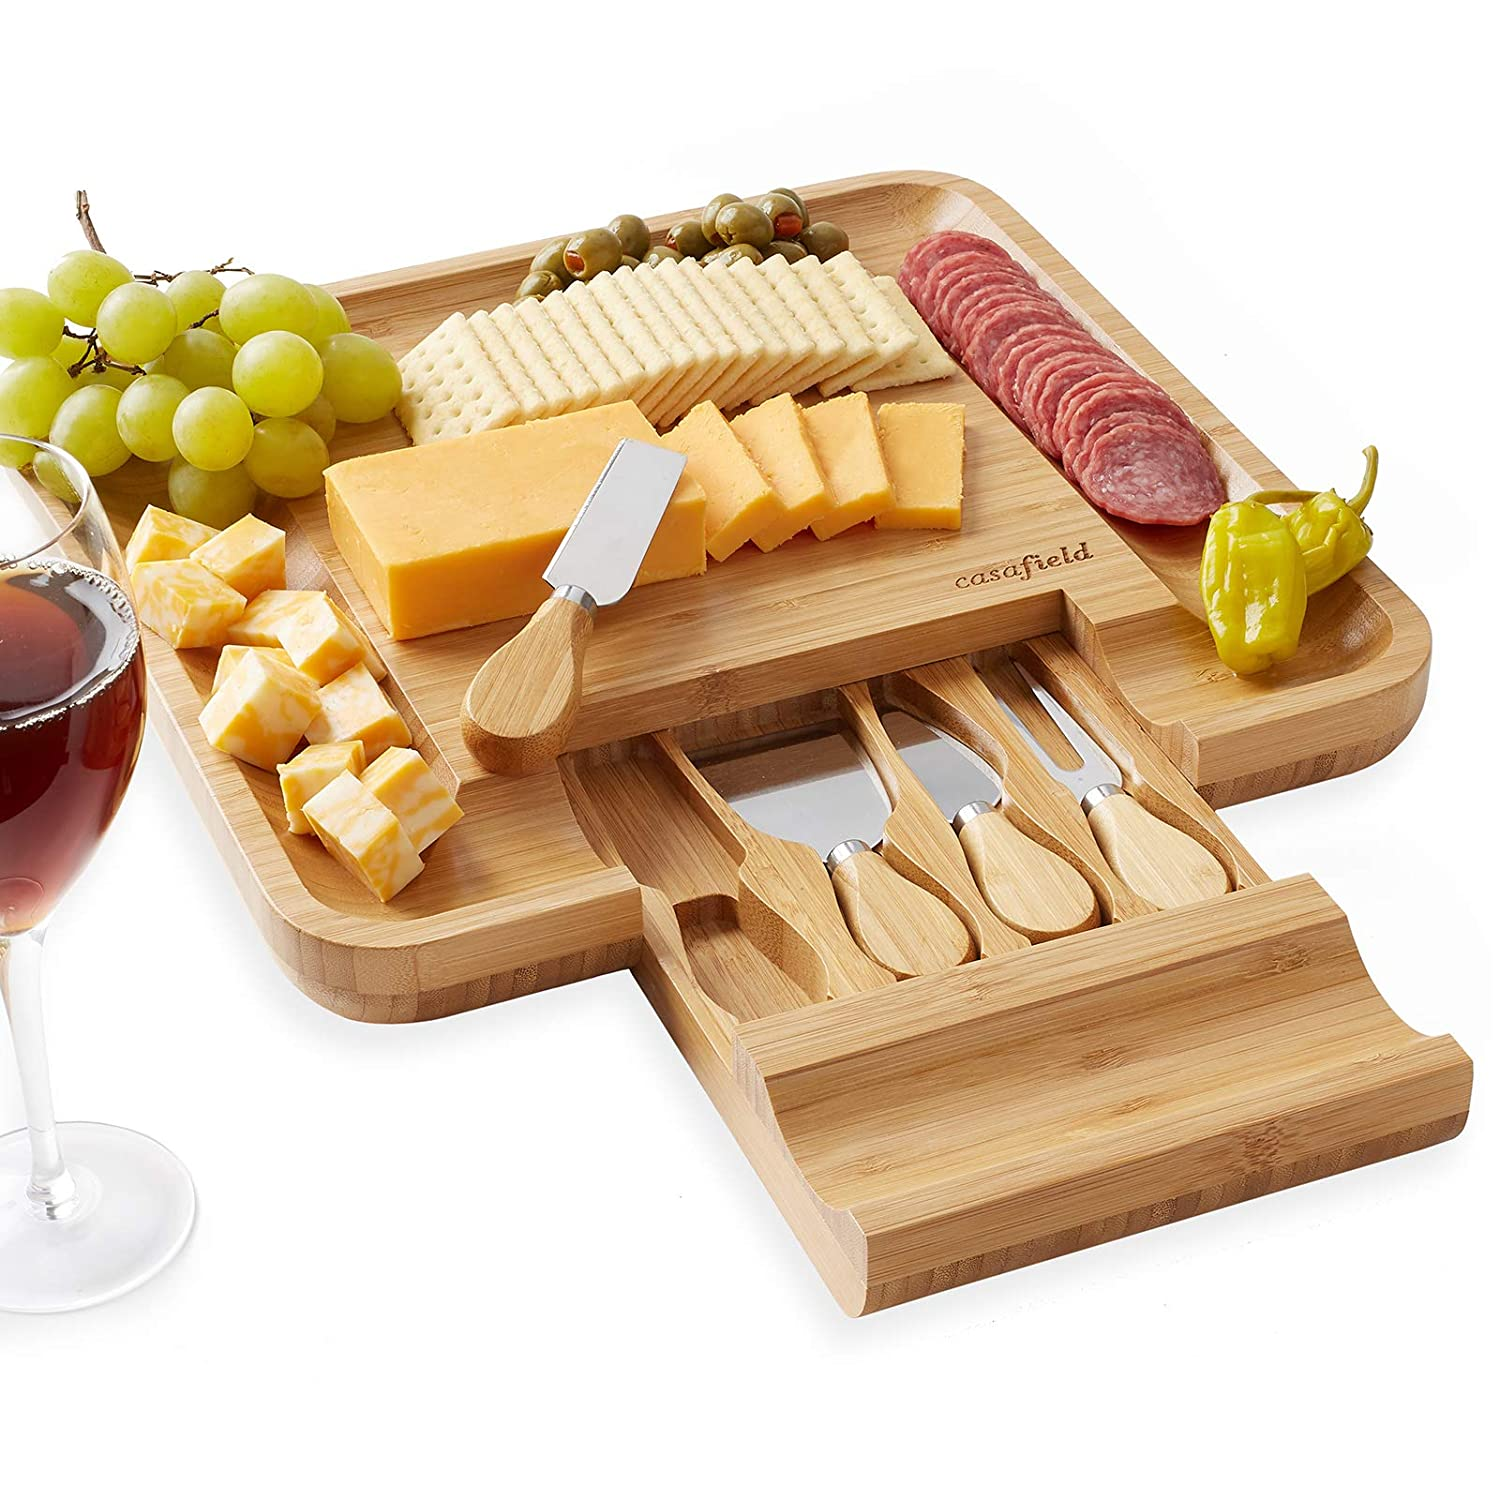 B07DTJFJH1 Casafield Organic Bamboo Cheese Cutting Board & Knife Gift Set - Wooden Serving Tray for Charcuterie Meat Platter, Fruit & Crackers - Slide Out Drawer with 4 Stainless Steel Knives 71xn1F1u27L